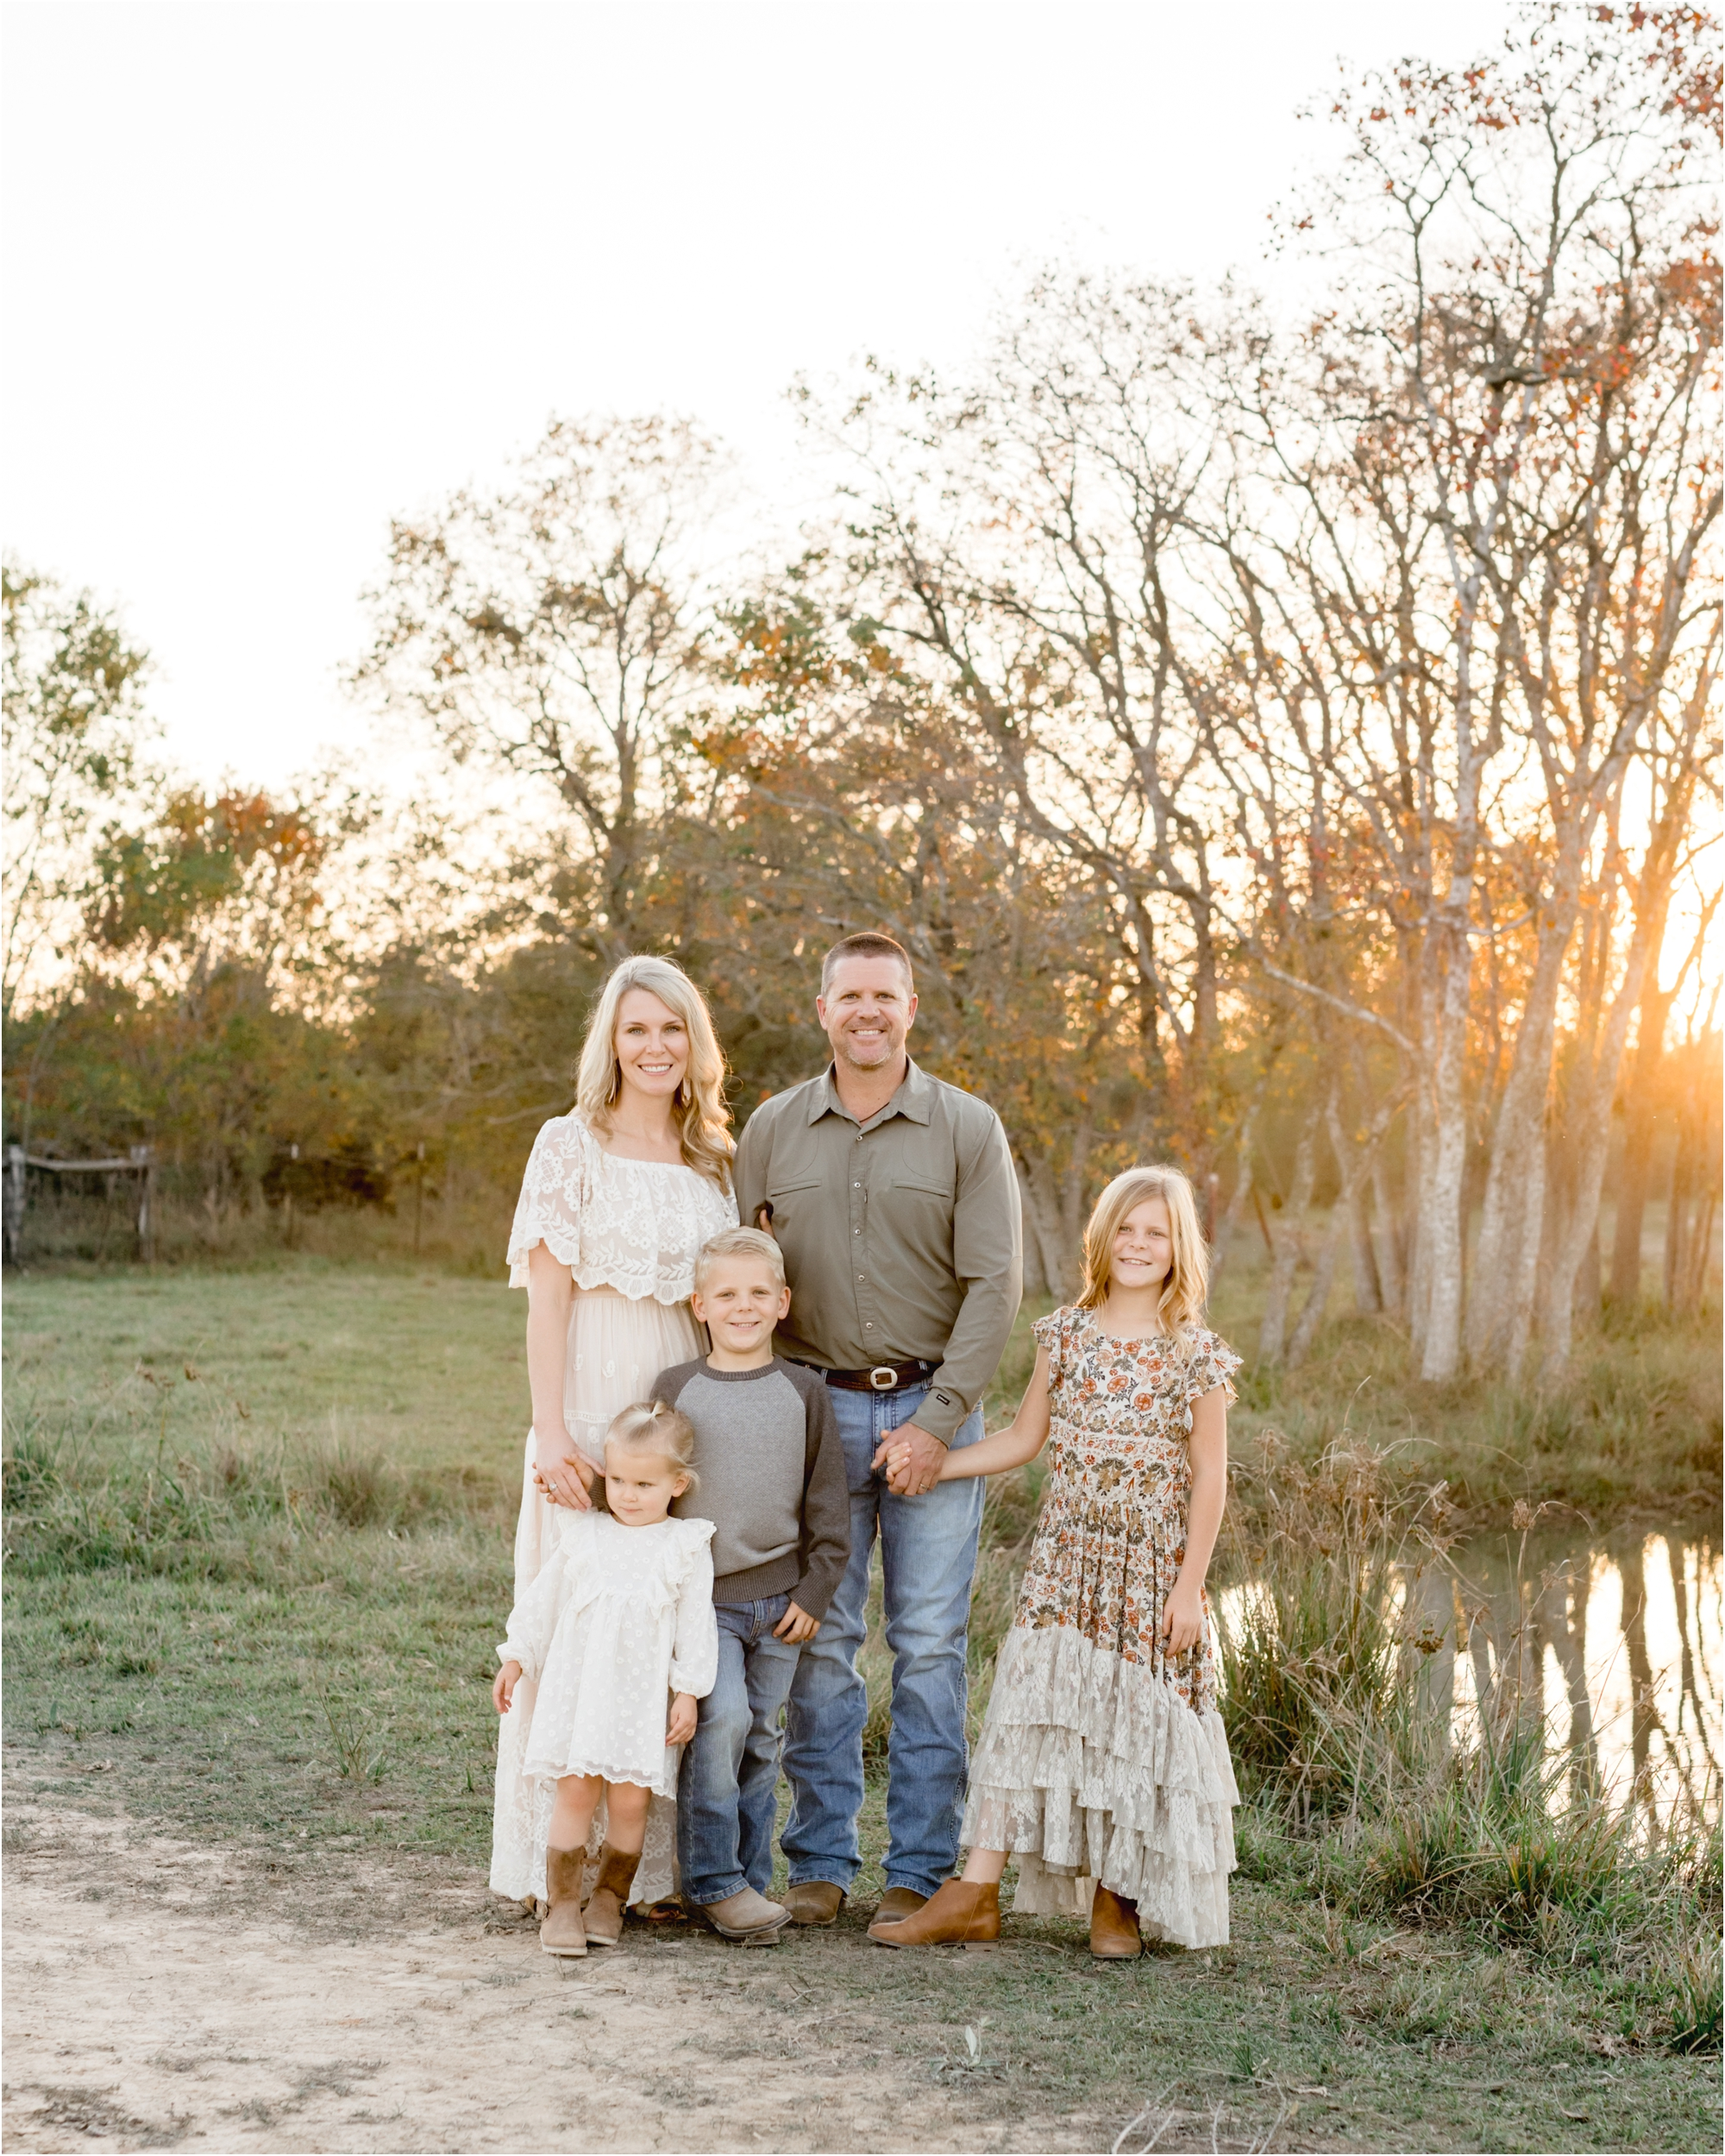 Golden hour portrait session with family in Old Katy, TX backyard. Photo by Lifetime of Clicks Photography.